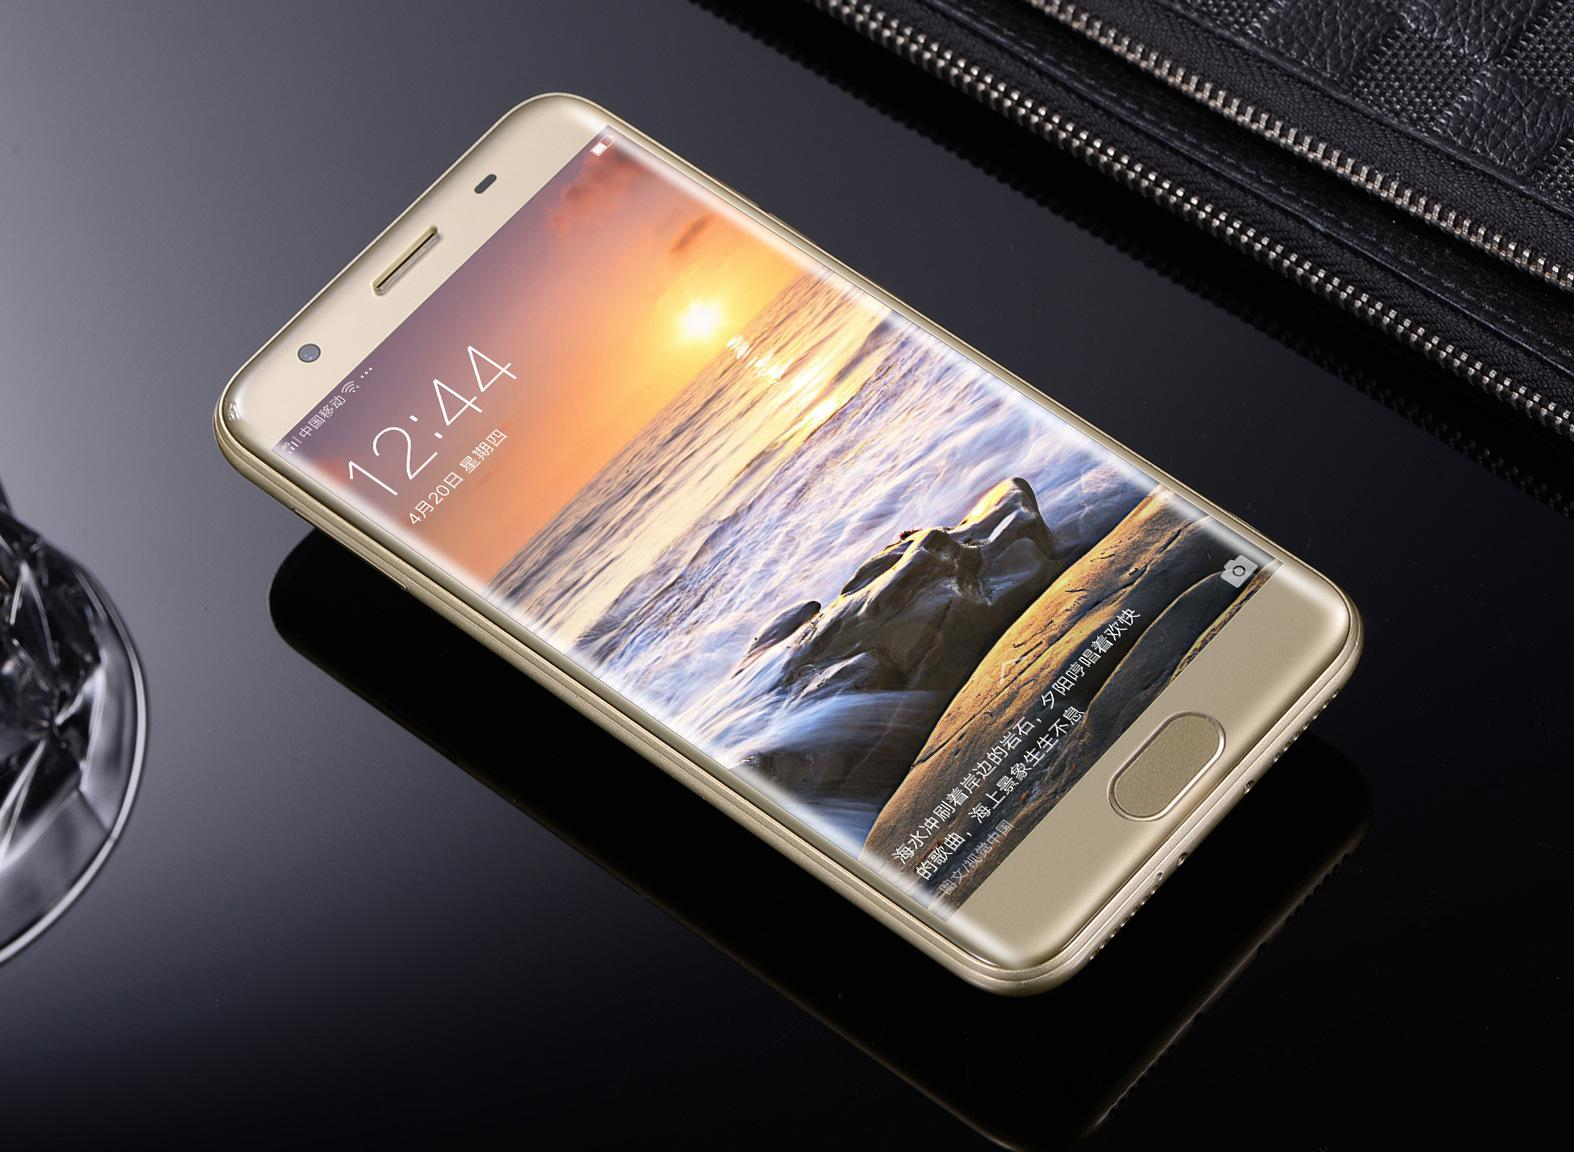 Ten Internal Memory 6g Function Fast Fill Hyperbolic Screen With Hyperbolic Camera Fingerprint With Double Cassette Mobile Phone One Metal